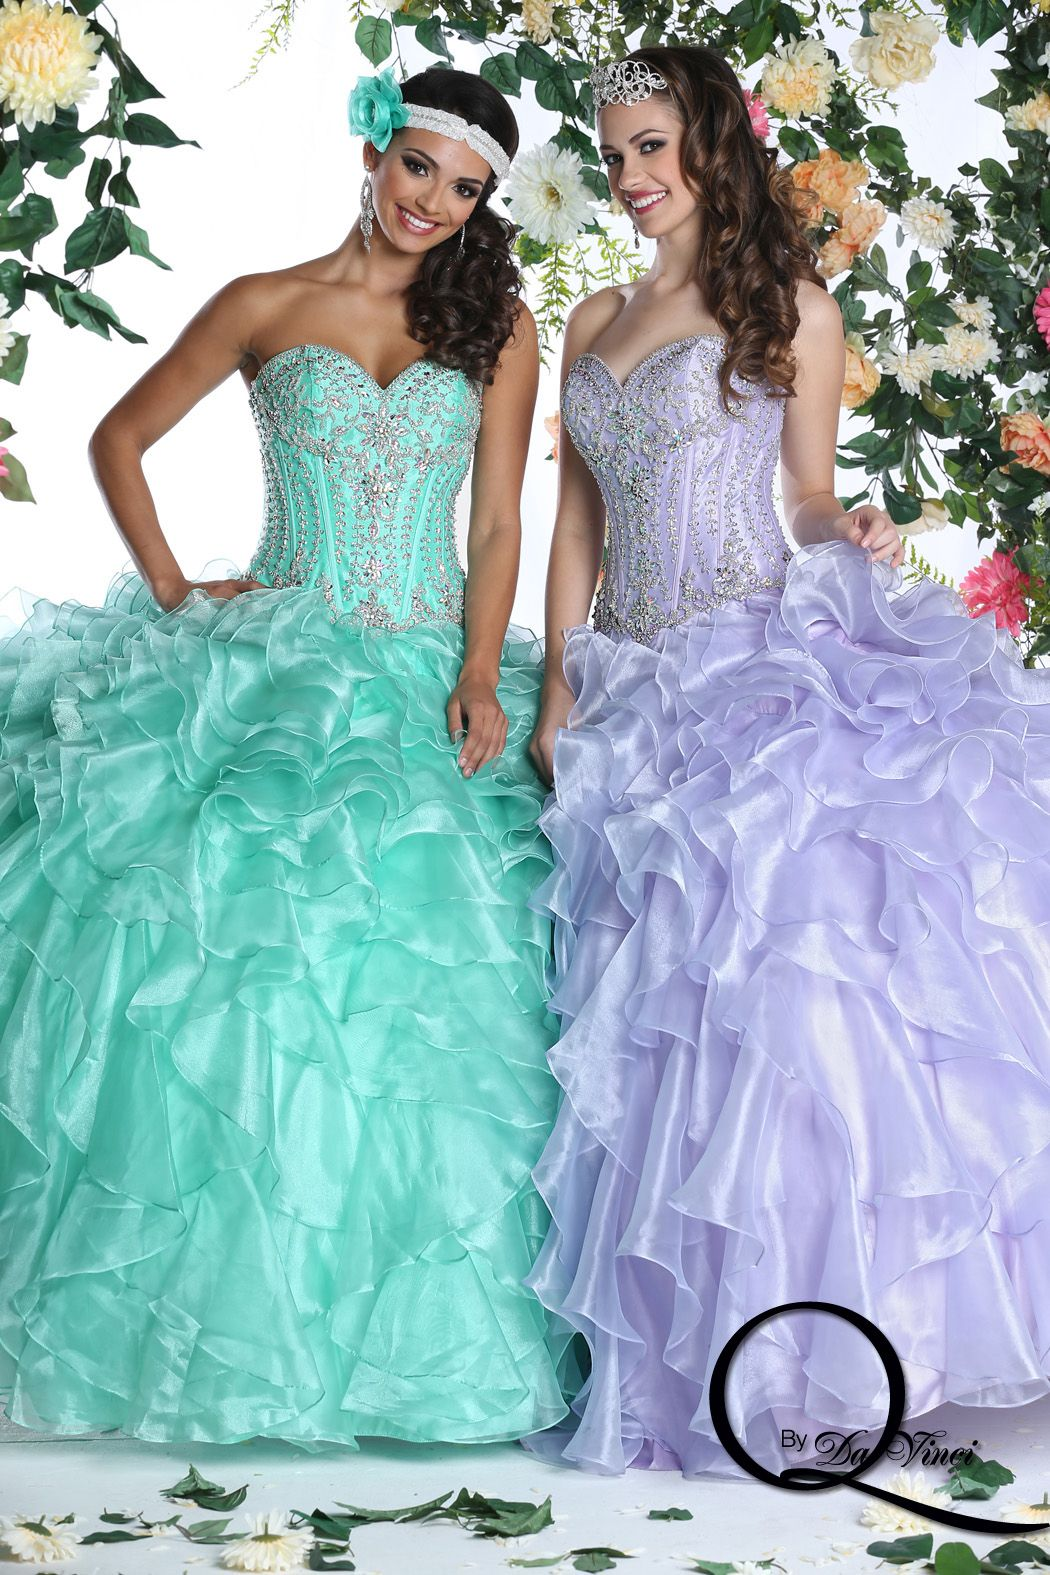 Fashionably chic Q by Davinci style 80266 featuring hermoso Shimmer Organza in colors Mint, Lilac!! #Quinceanera #Misquince #XV #Dress